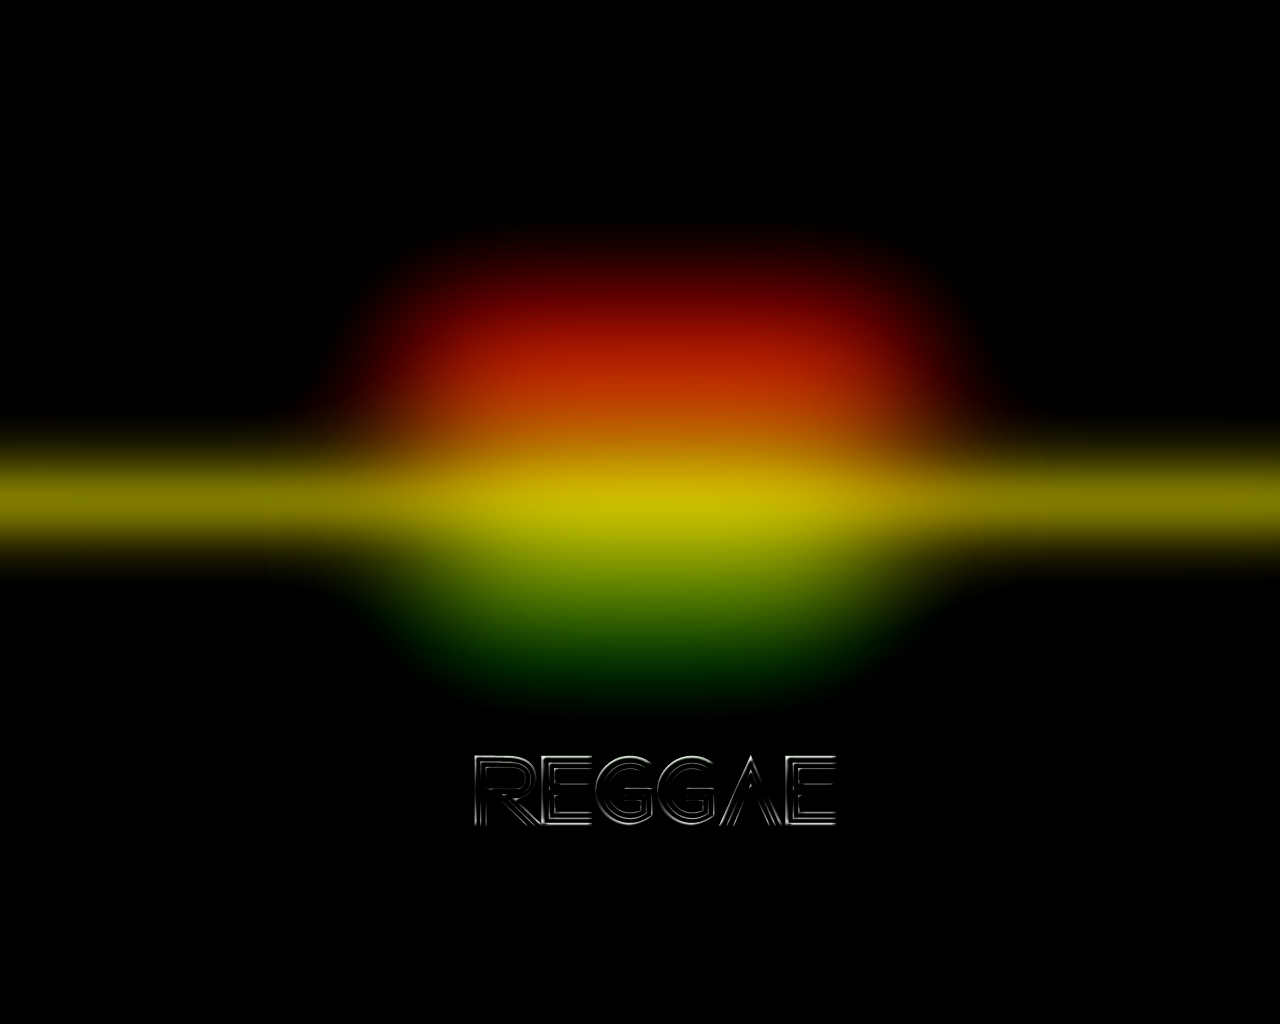 B.SCB: Best Reggae Backgrounds, Ruth Bodily